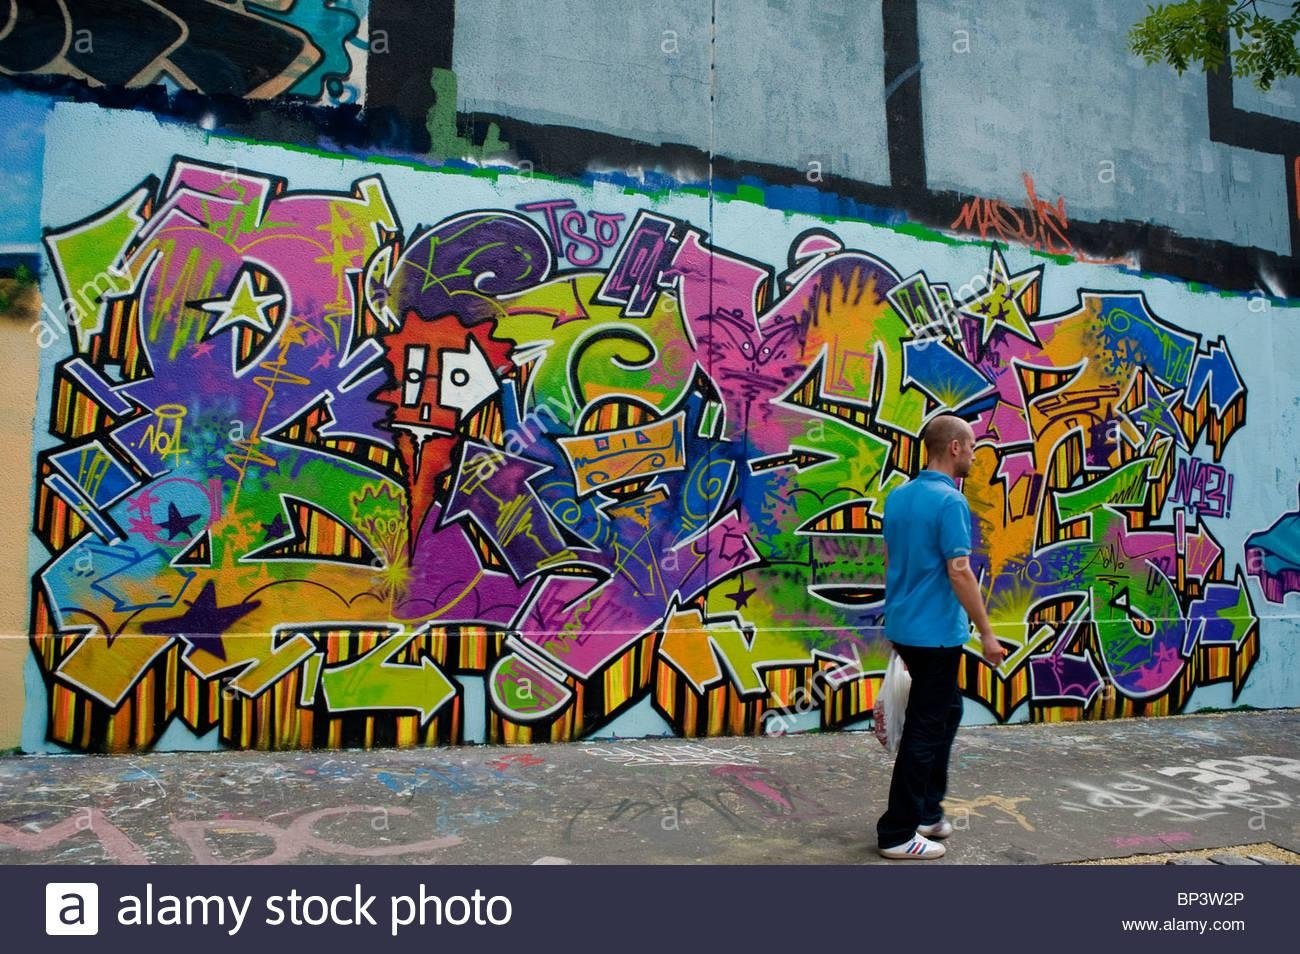 Paris, France, Street Scene, Painted Wall With Spray Paint Pertaining To Street Scene Wall Art (View 6 of 20)